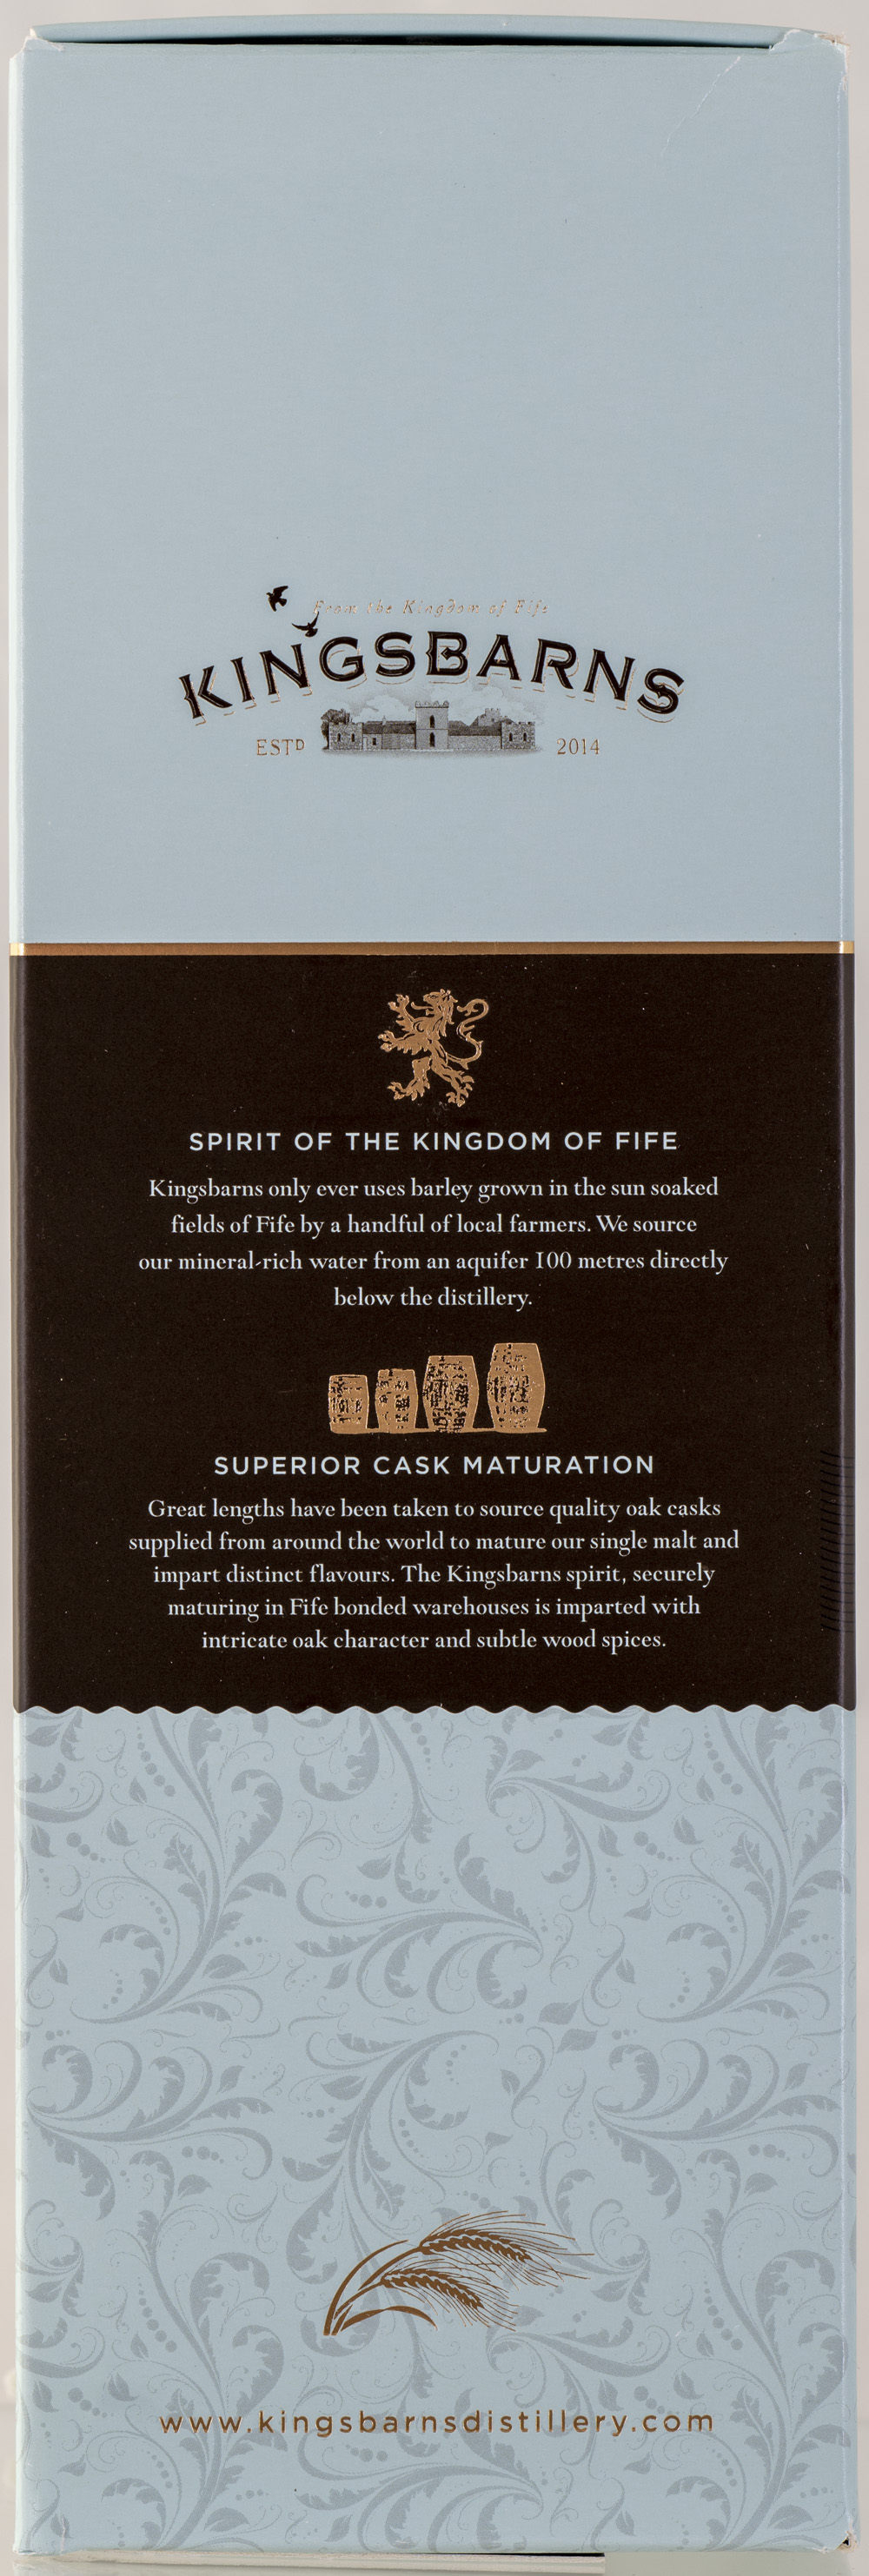 Billede: PHC_2228 - Kingsbarns Dream to Dram - box side.jpg